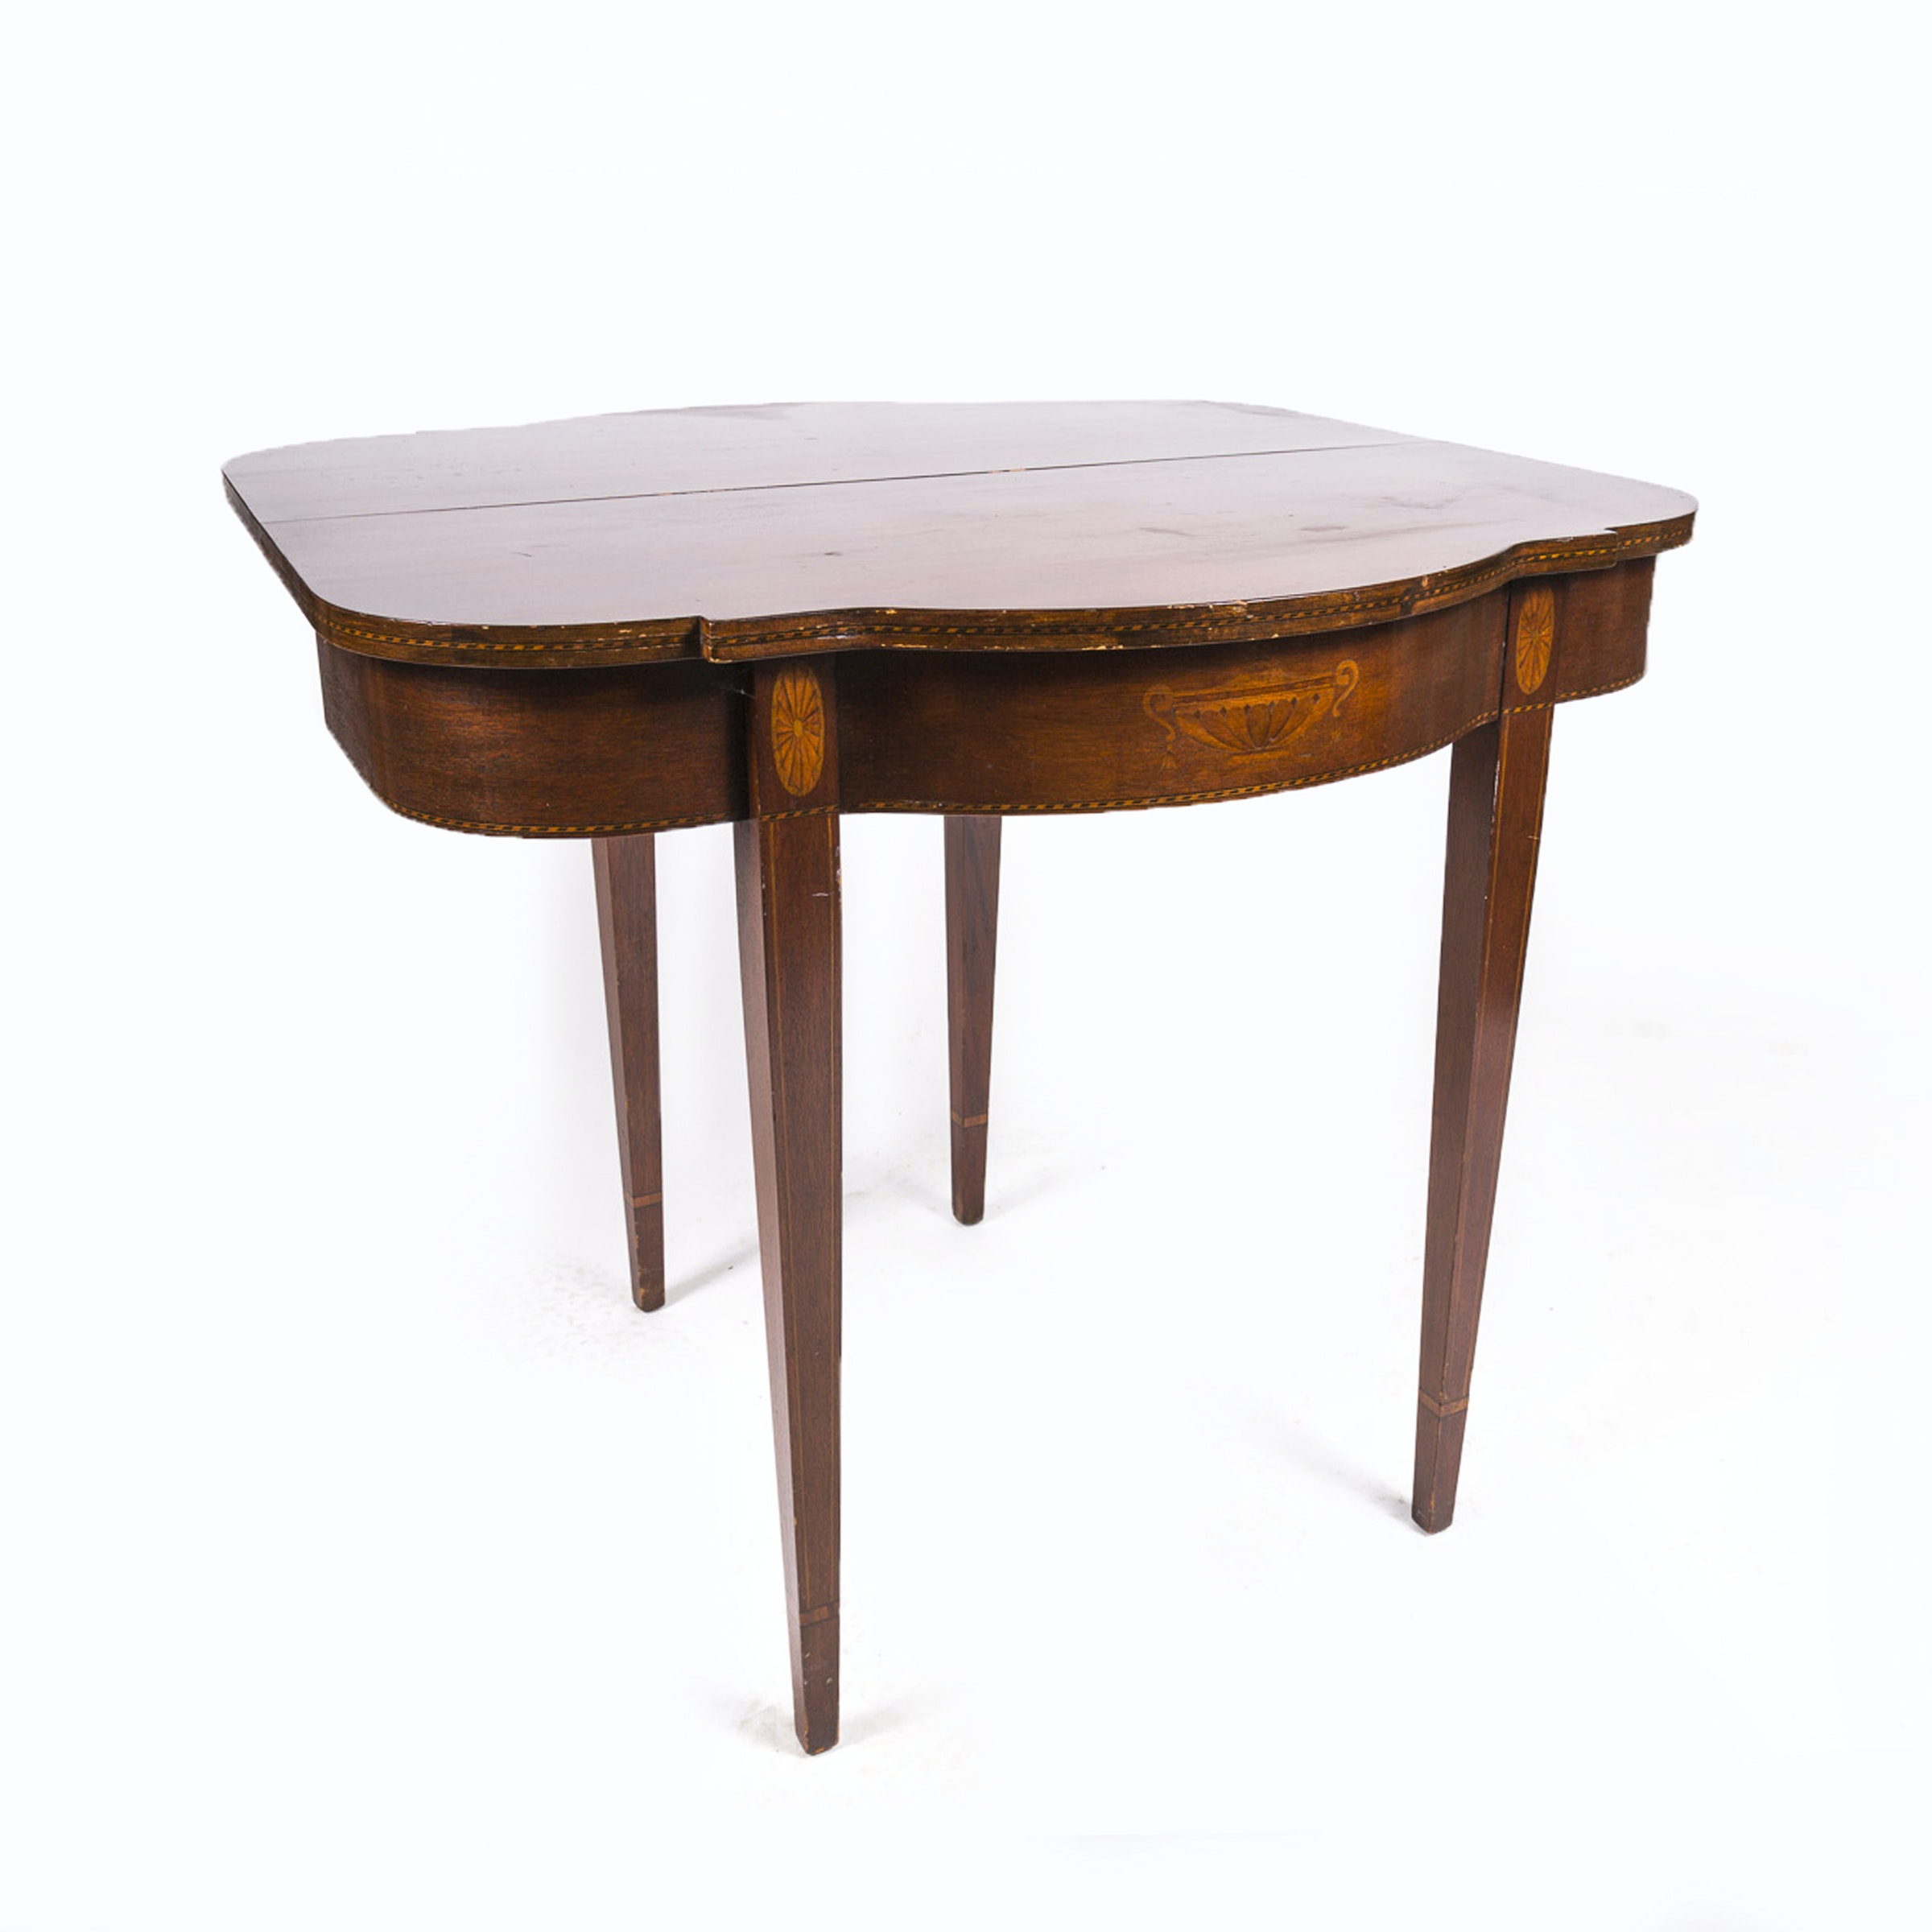 Heppelwhite Style Mahogany Game Table with Marquetry from Fine Arts Furniture